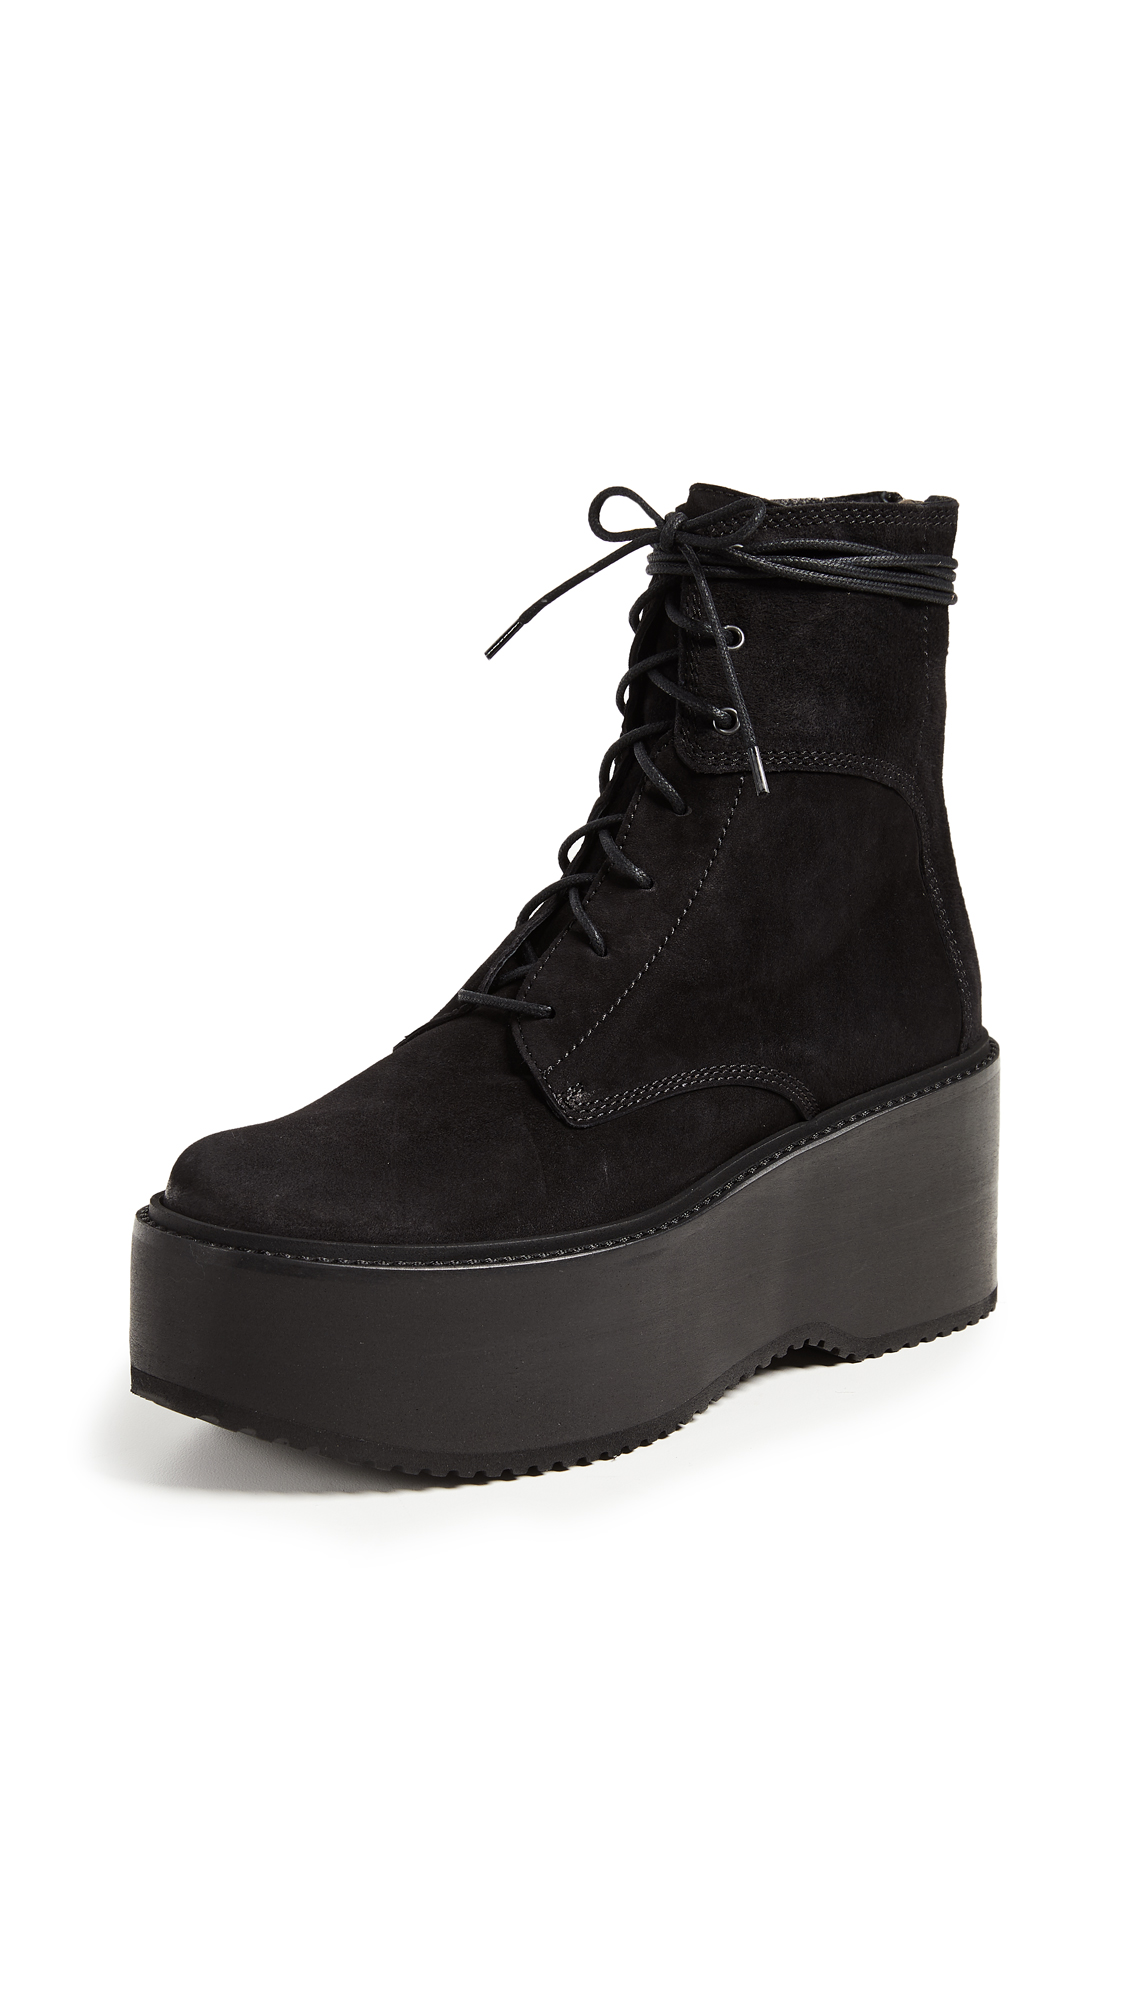 Photo of LD Tuttle The Plunge Platform Combat Boots - buy LD Tuttle footwear online